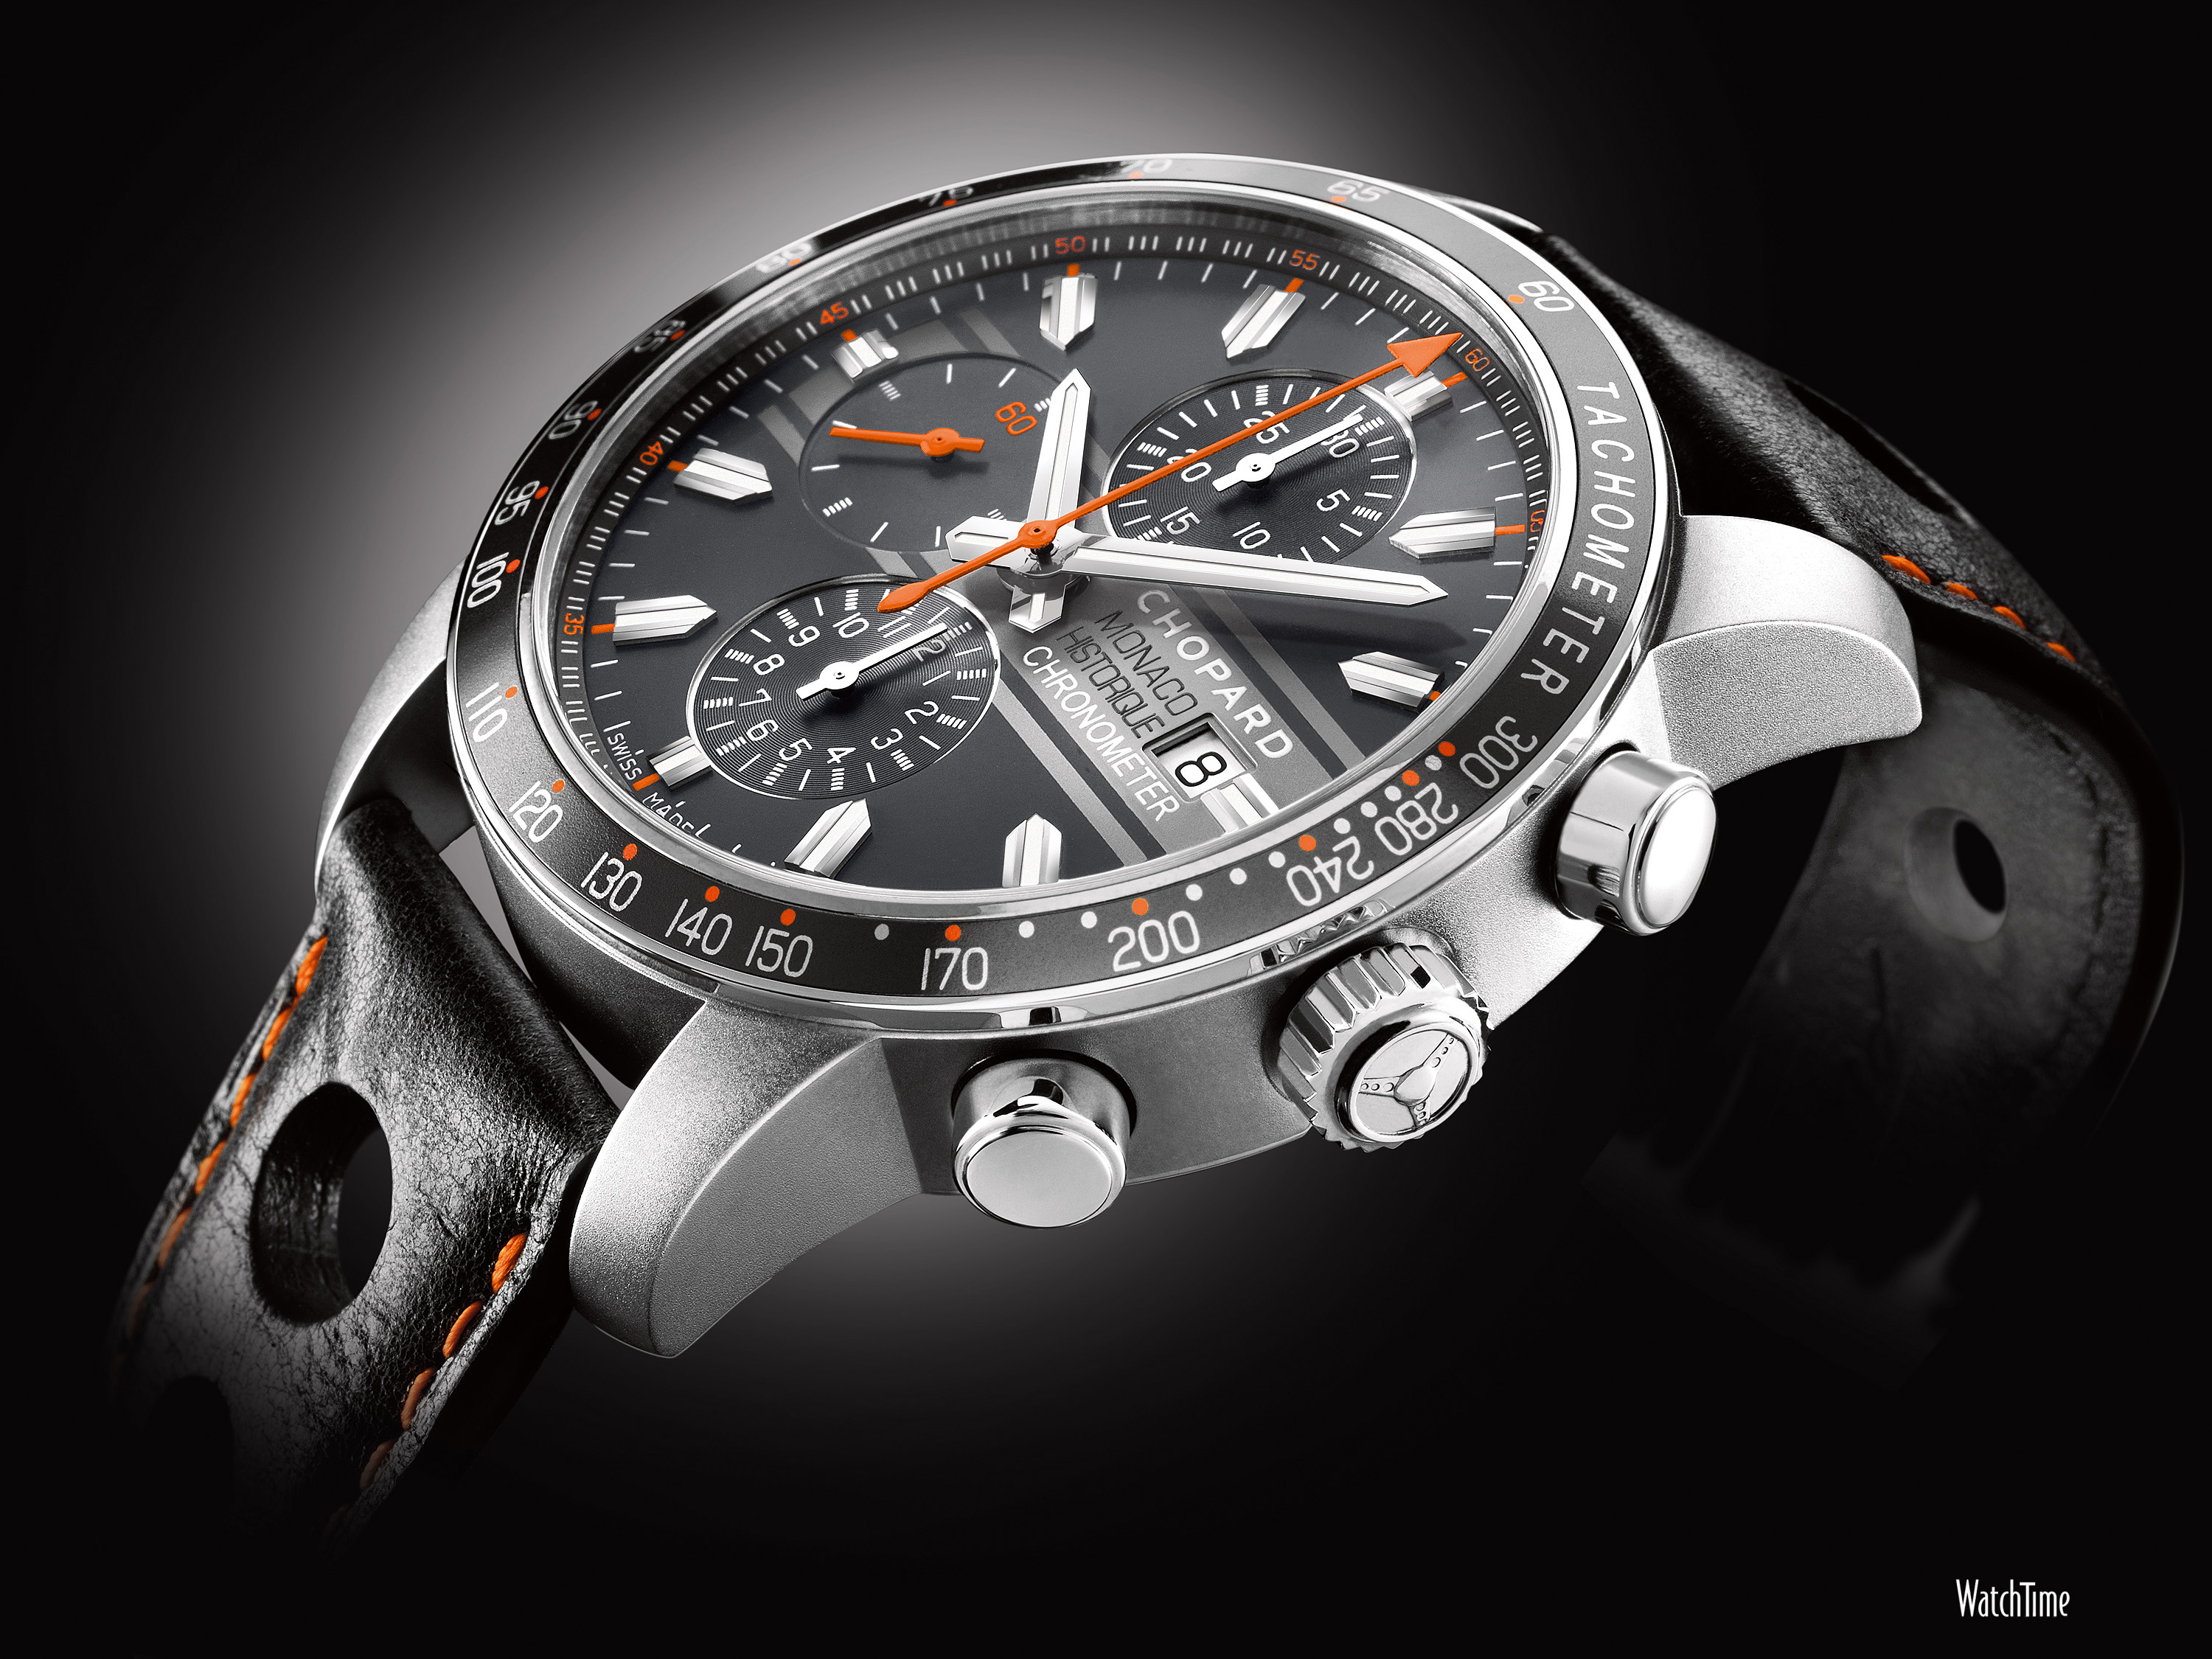 most expensive watch brands top 5 page 2 of 5 ealuxecom